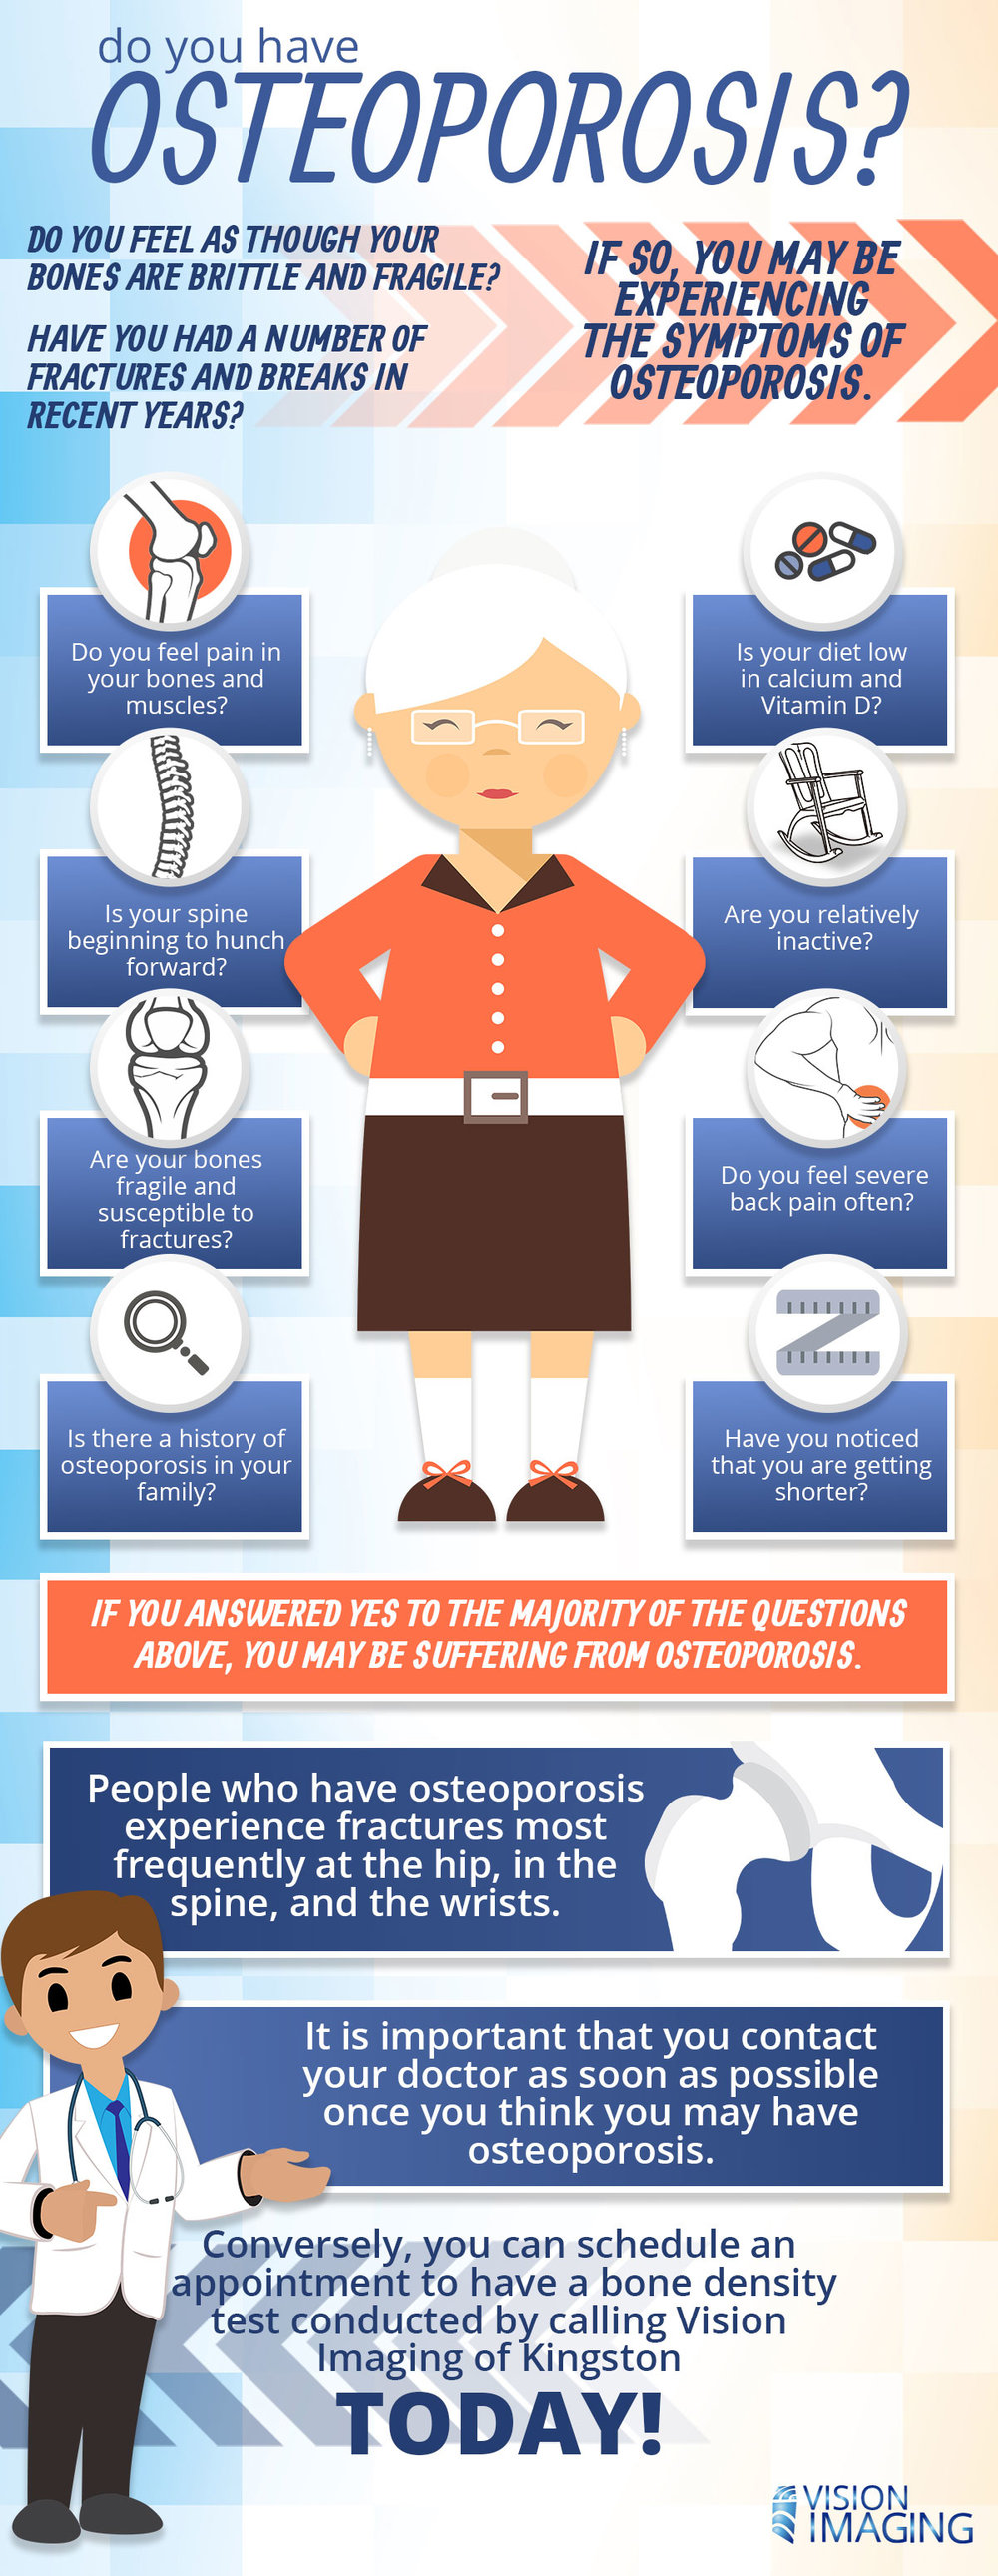 Do-You-Have-Osteoporosis-Infographic.jpg